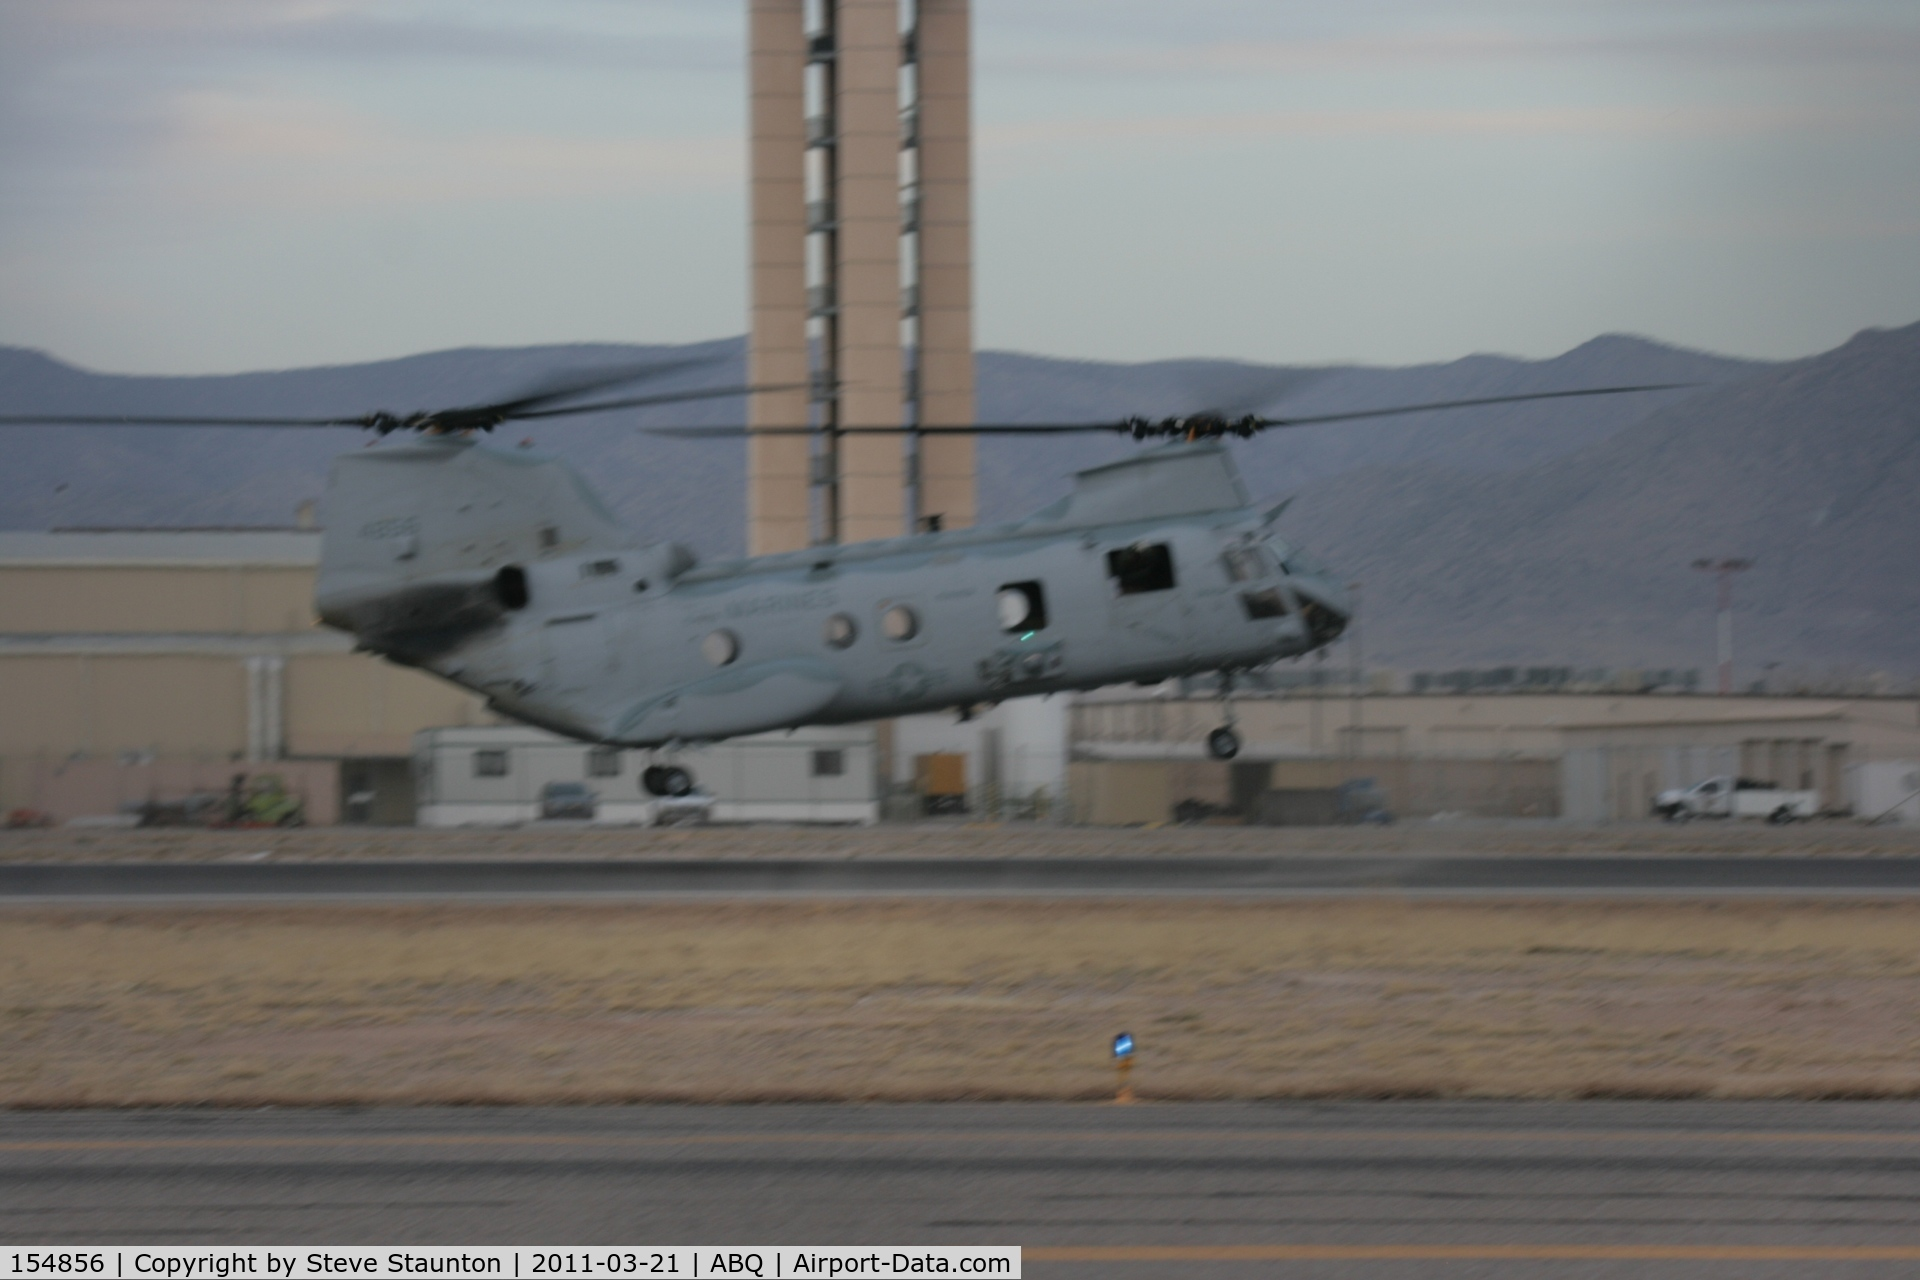 154856, Boeing Vertol CH-46F Sea Knight C/N 2463, Taken at Alburquerque International Sunport Airport, New Mexico in March 2011 whilst on an Aeroprint Aviation tour